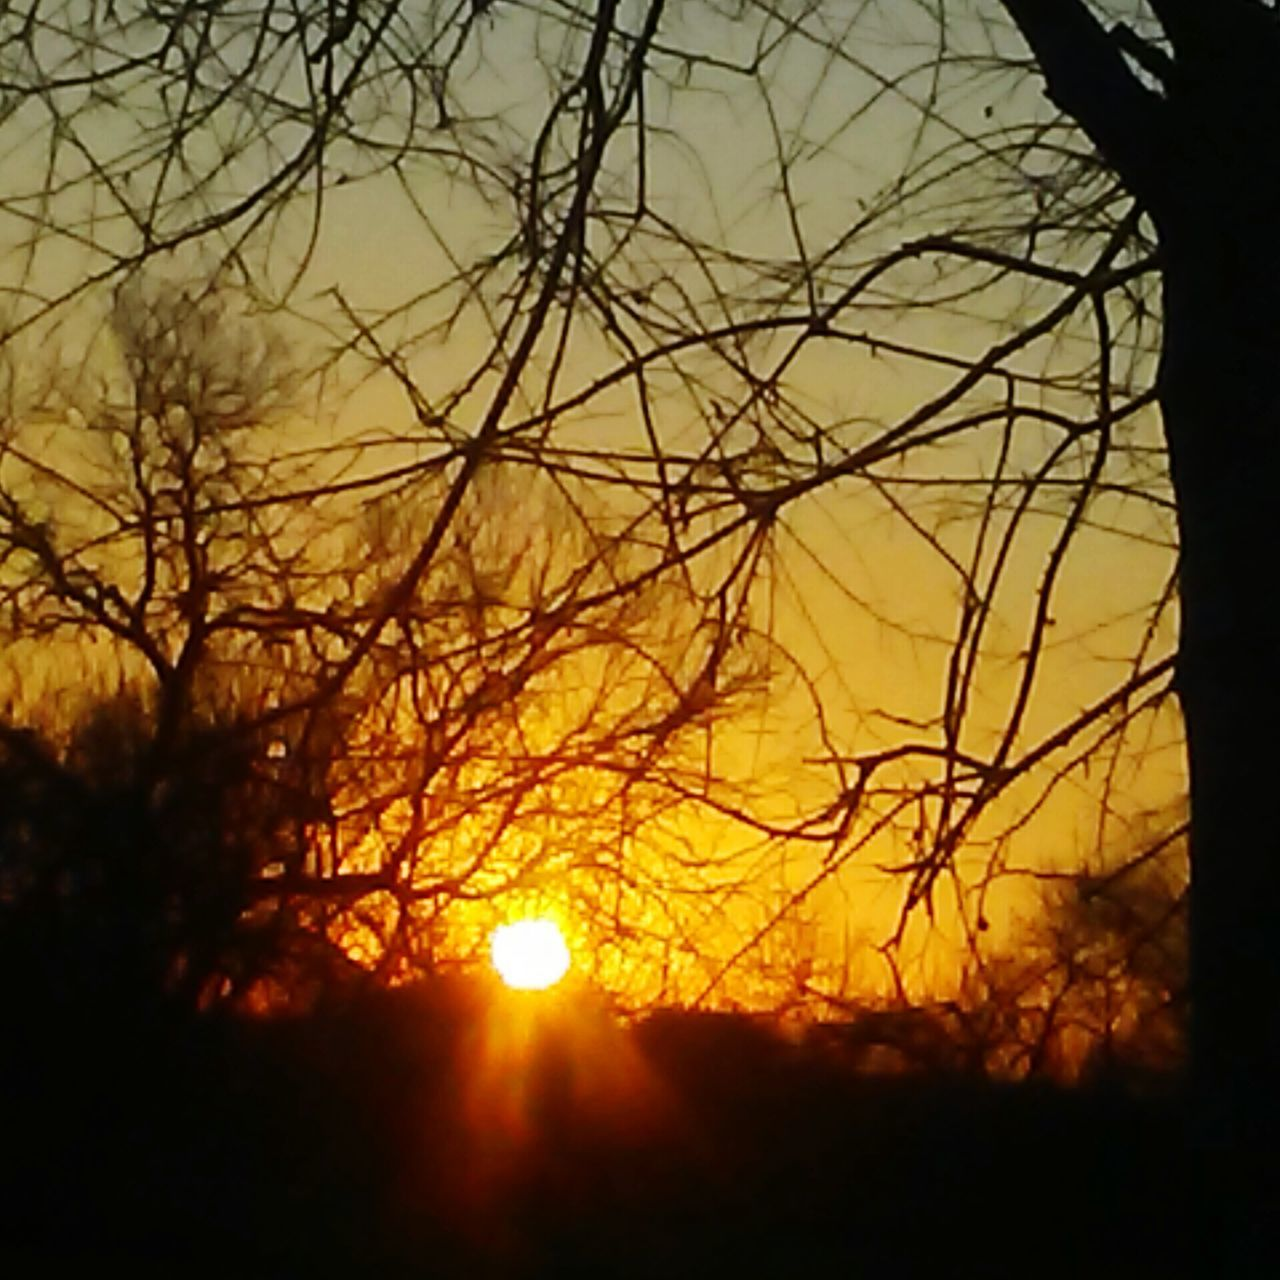 sun, sunset, nature, silhouette, beauty in nature, tranquil scene, orange color, tranquility, scenics, sunlight, bare tree, sky, outdoors, field, no people, tree, branch, close-up, day